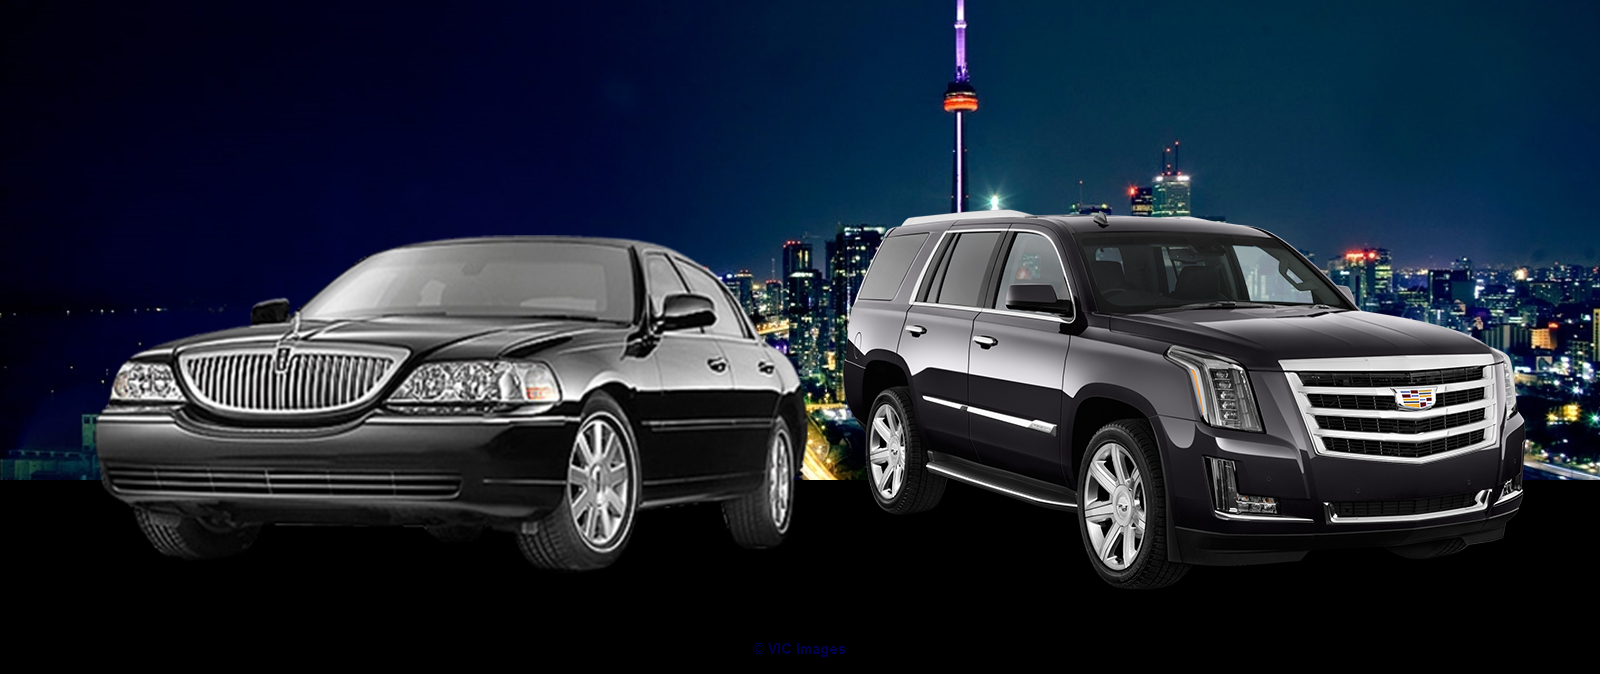 Waterloo Airport Limo Taxi Services